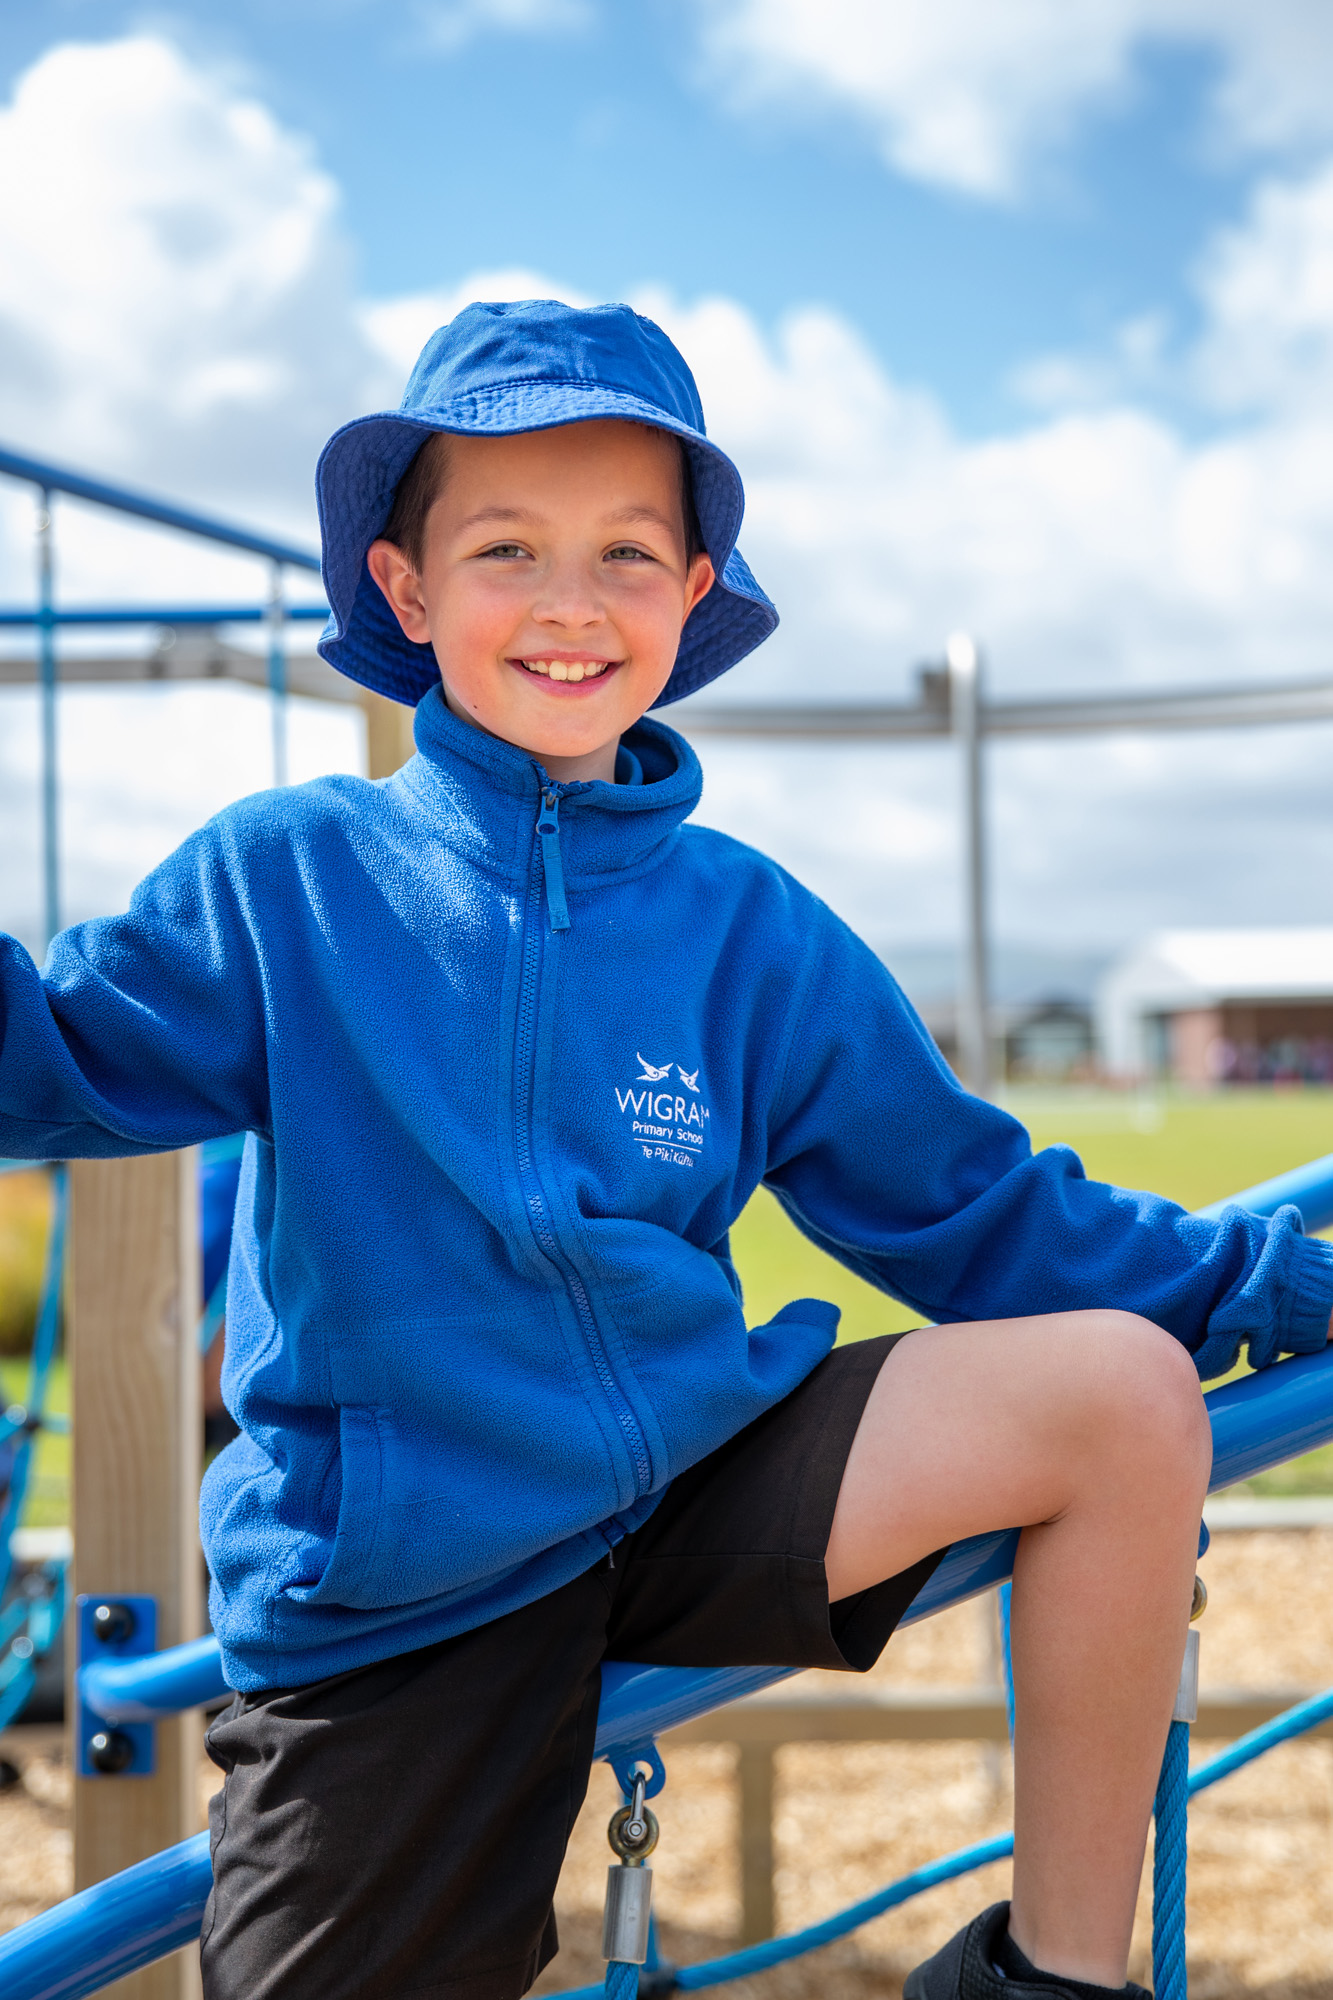 young male wearing blue and blue bucket hat on a climbing fame on an outdoor playground